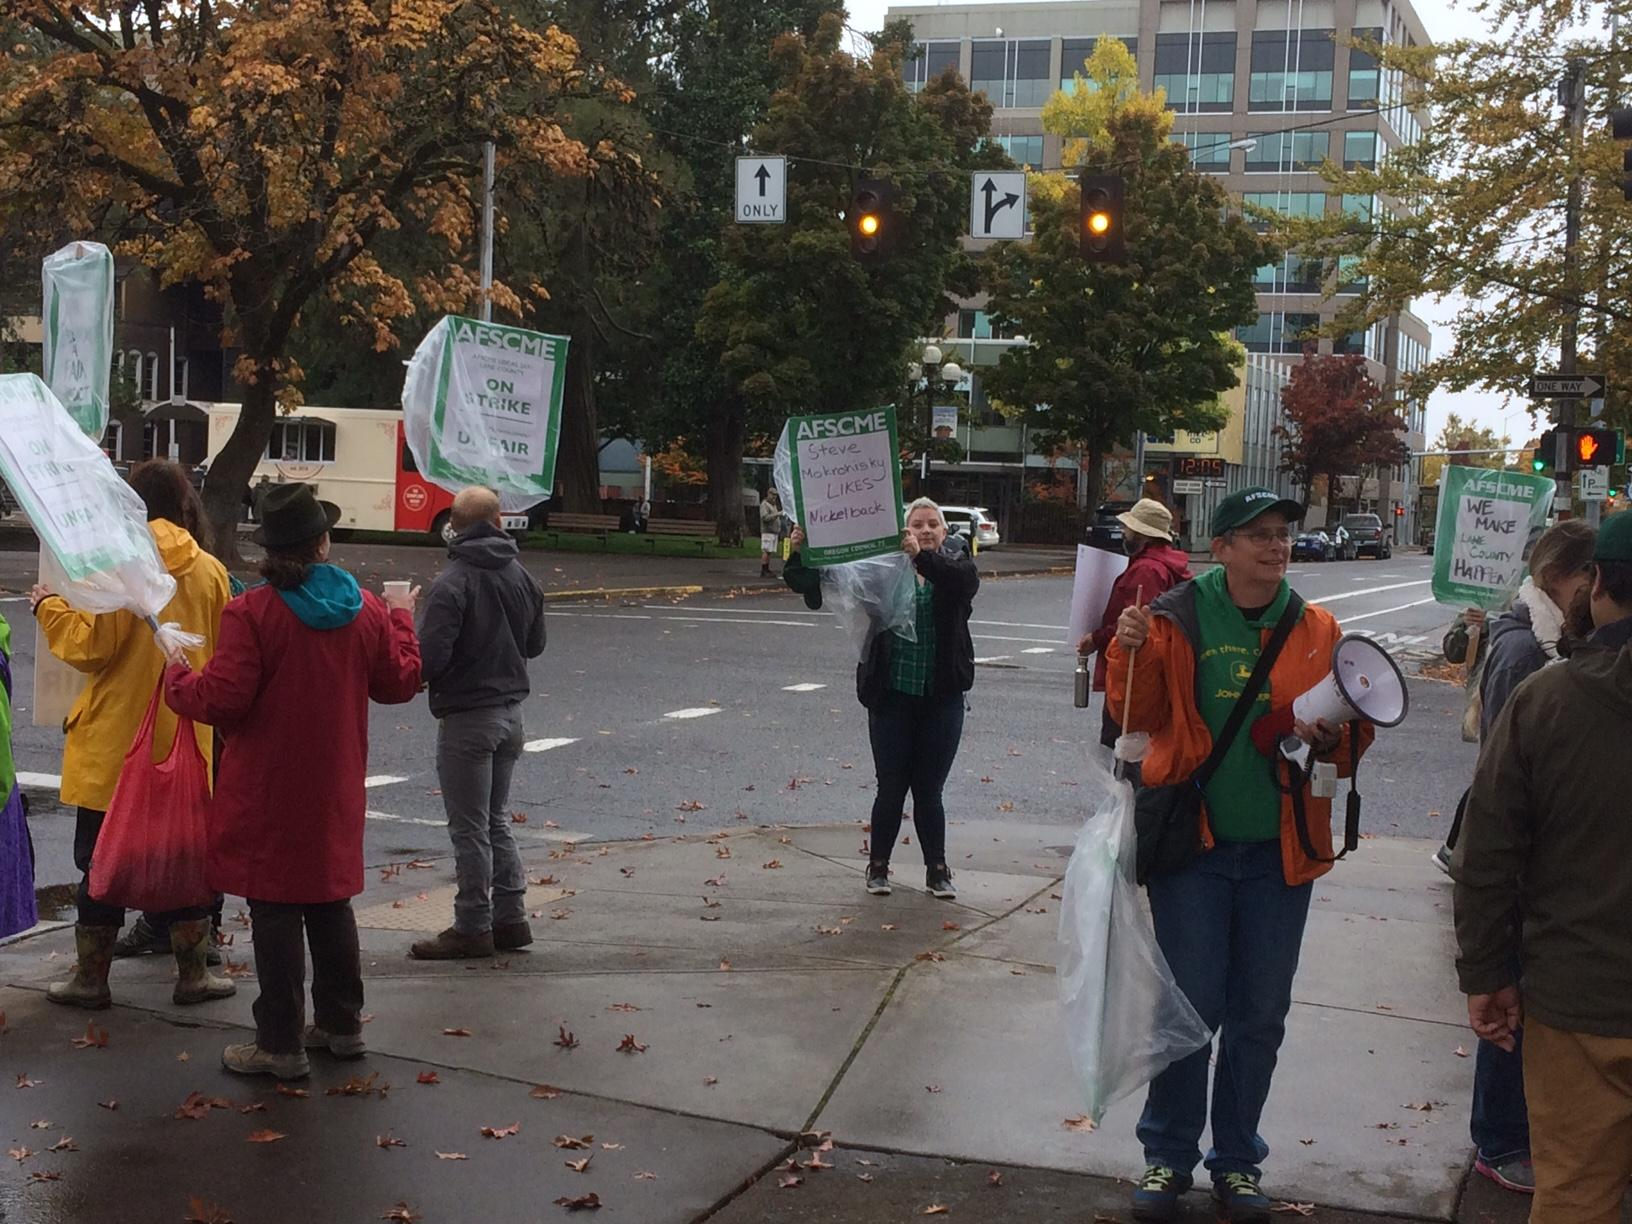 Lane County employees represented by AFSCME returned to the picket lines Thursday after going on strike Wednesday morning. The county and union return to the negotiating table on Friday. (SBG)